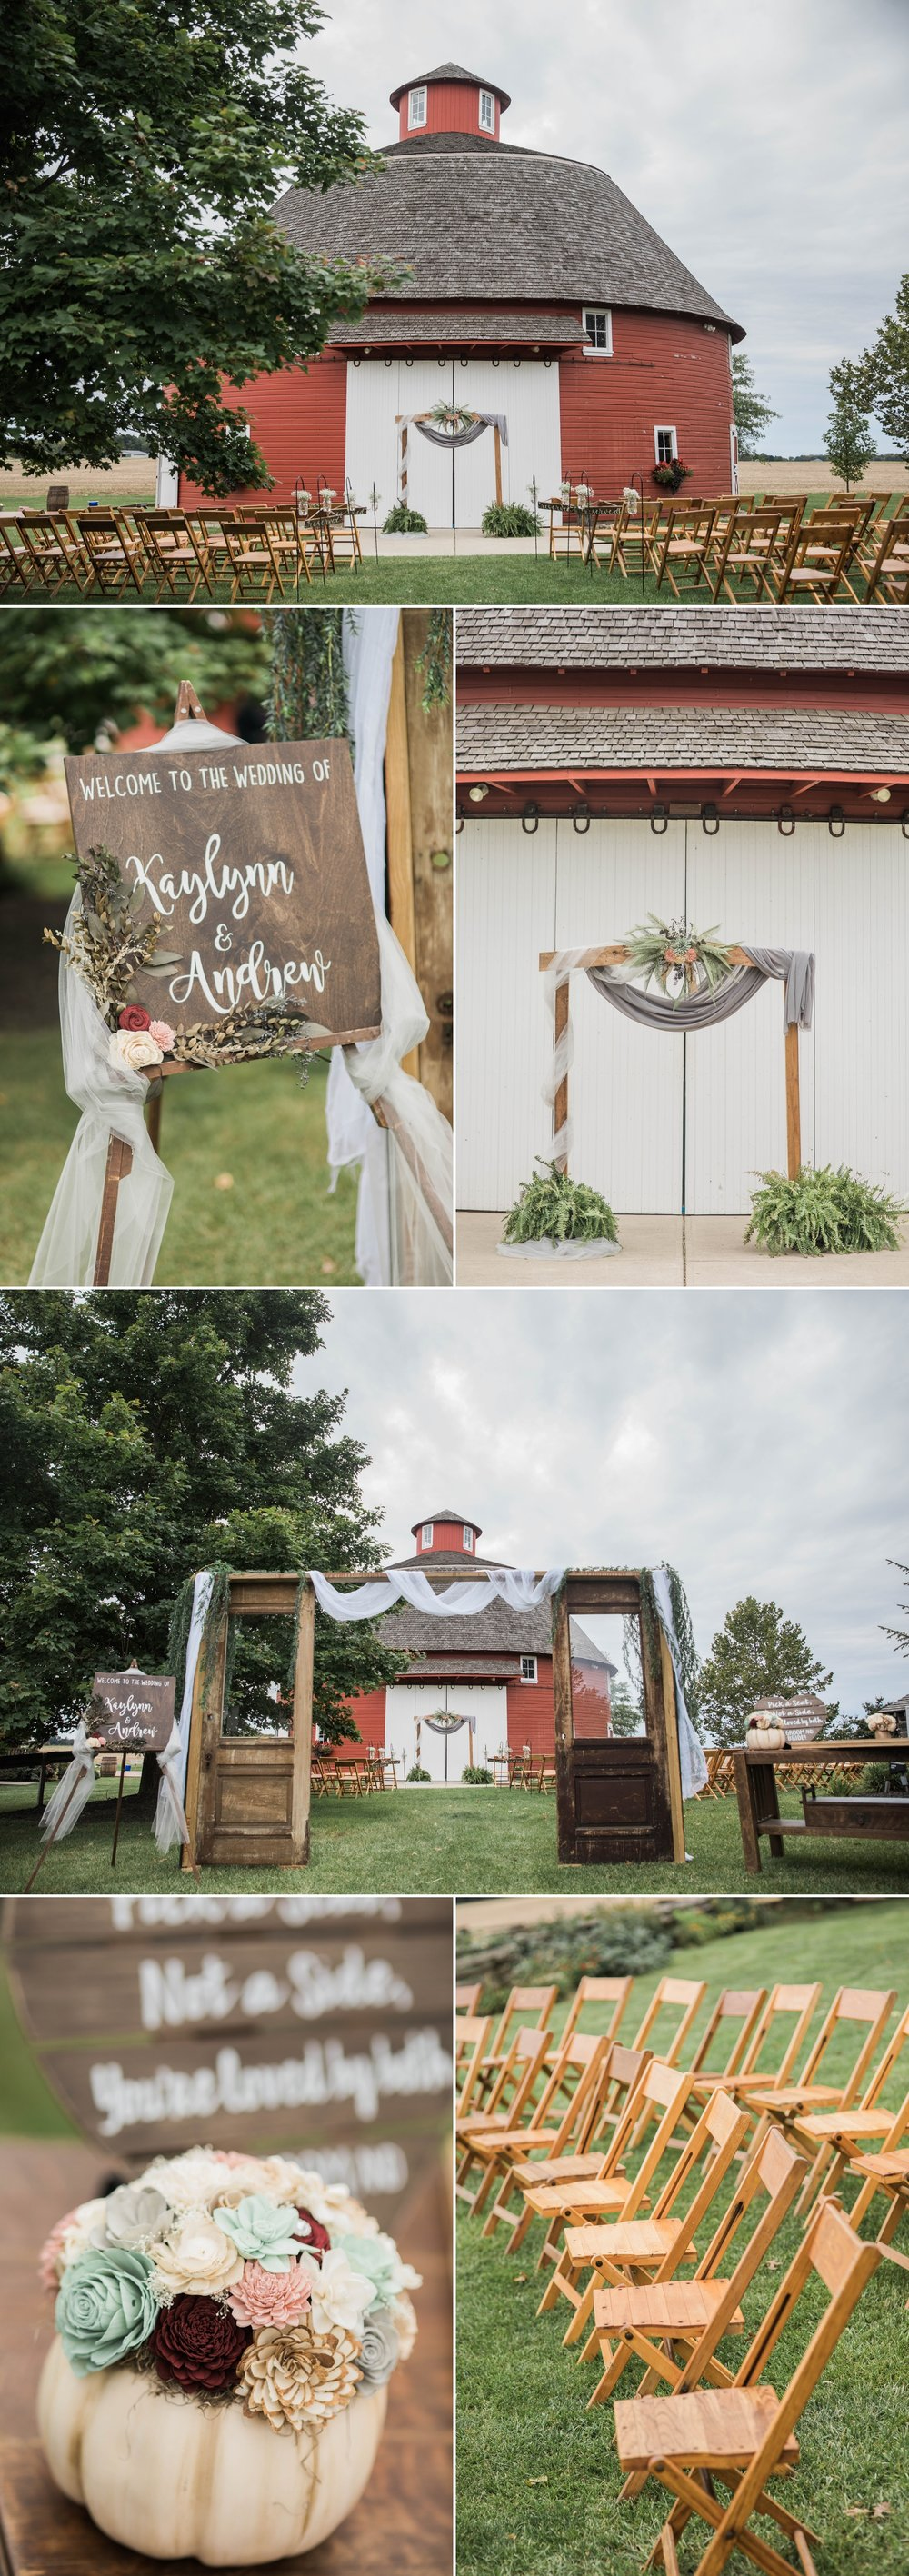 barn details kelley agricultural museum farm ceremony alter